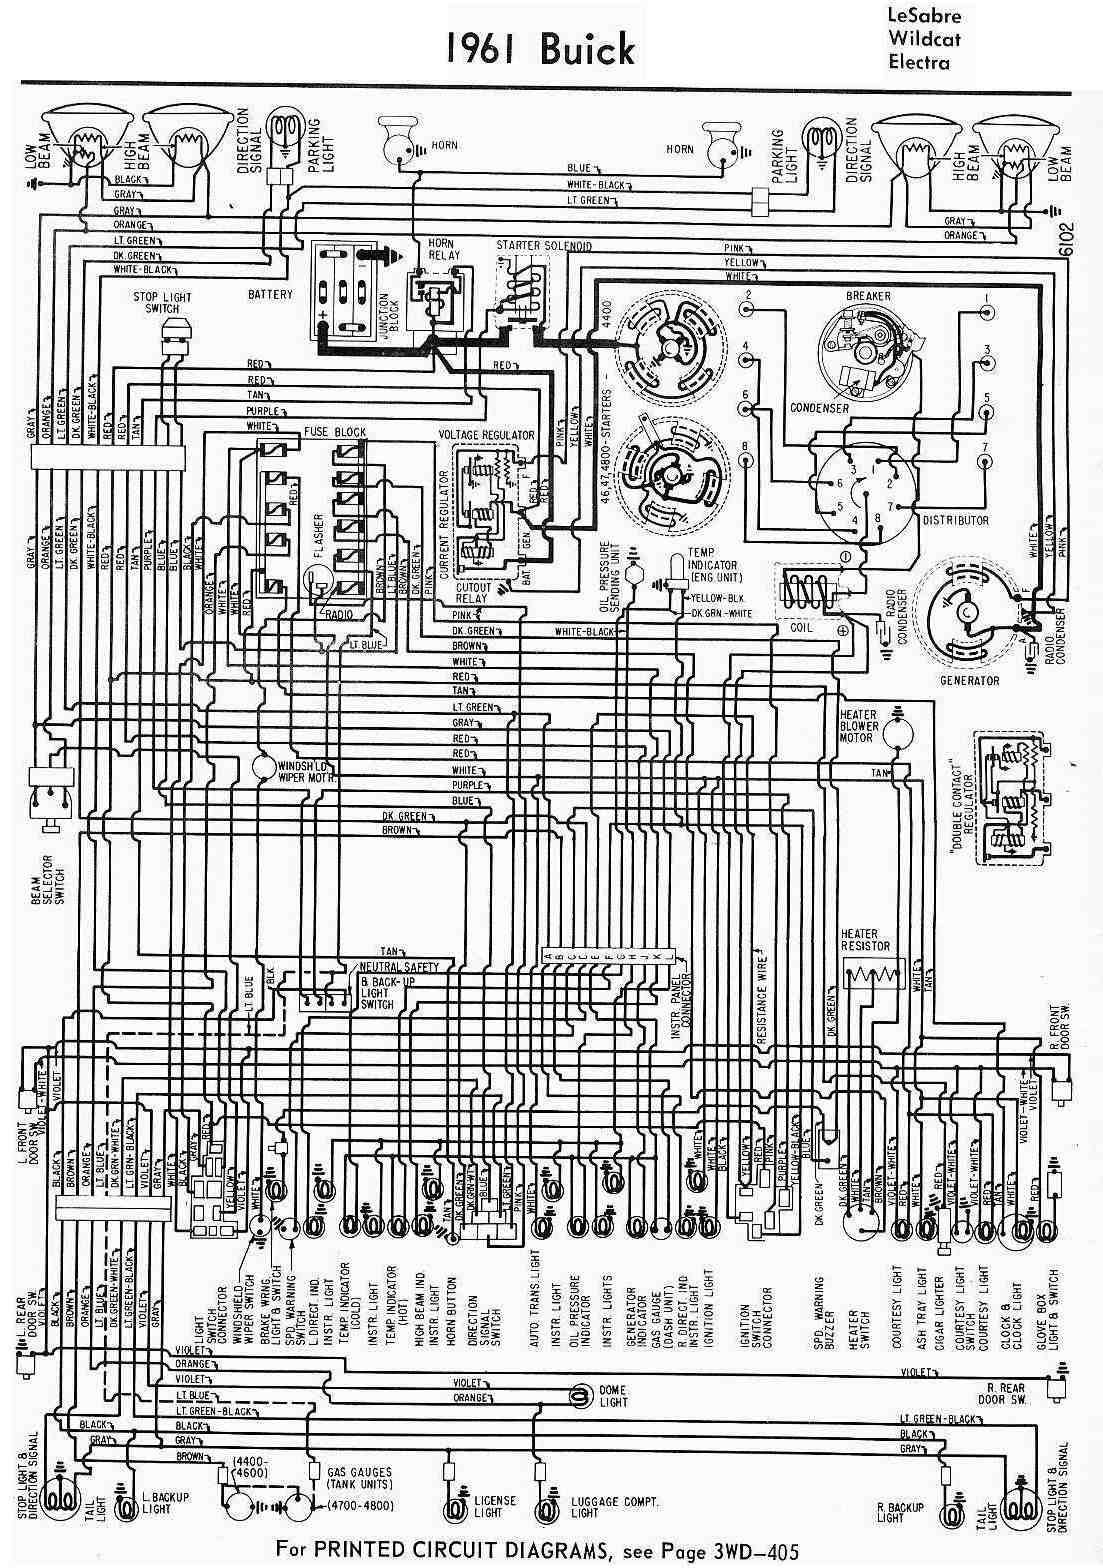 1988 chrysler new yorker wiring diagram 1948 chrysler new yorker wiring diagram #4